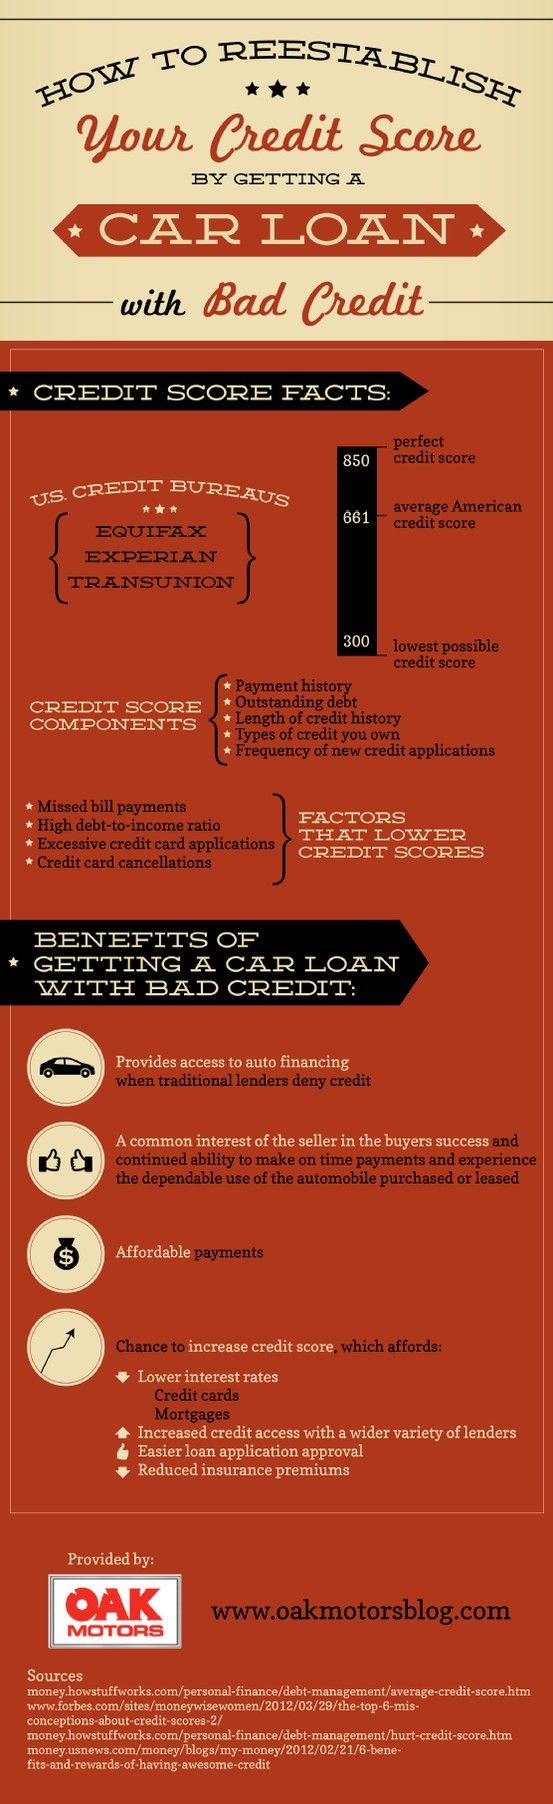 pin by info graphics on car and automotive infographics cars car loans credit score. Black Bedroom Furniture Sets. Home Design Ideas